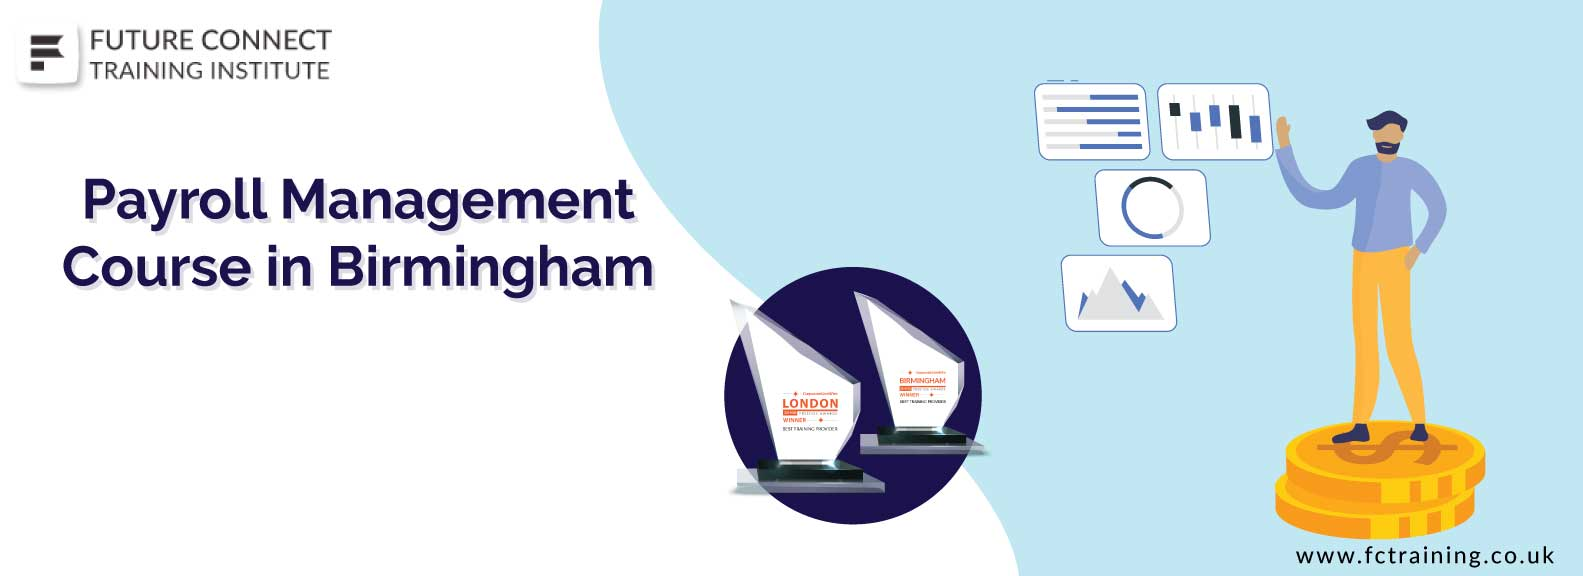 Payroll Management Course in Birmingham